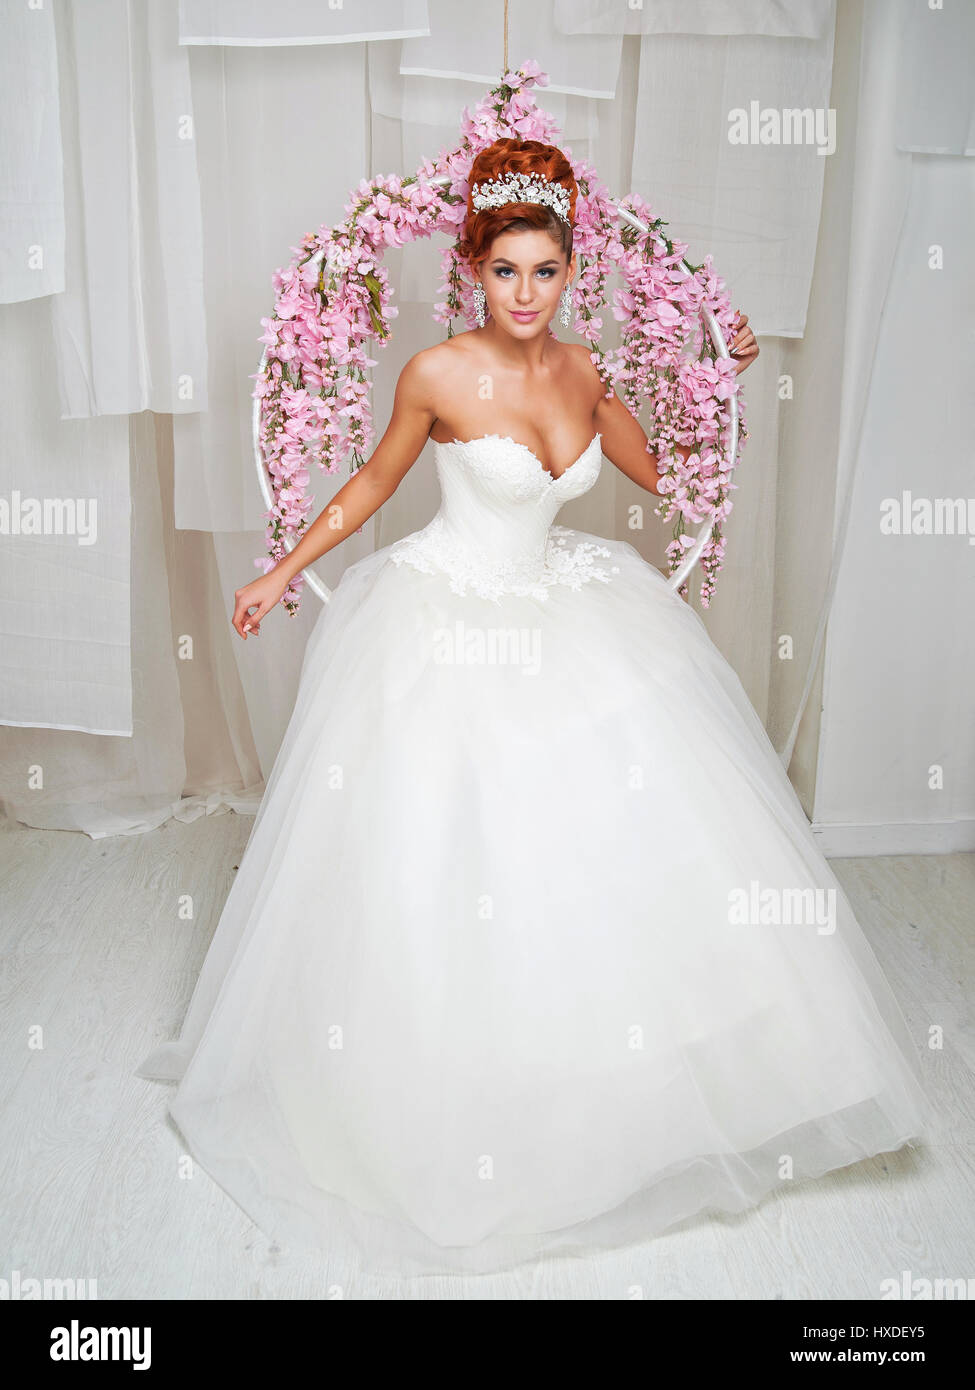 Wedding Dress And Red Hair High Resolution Stock Photography and